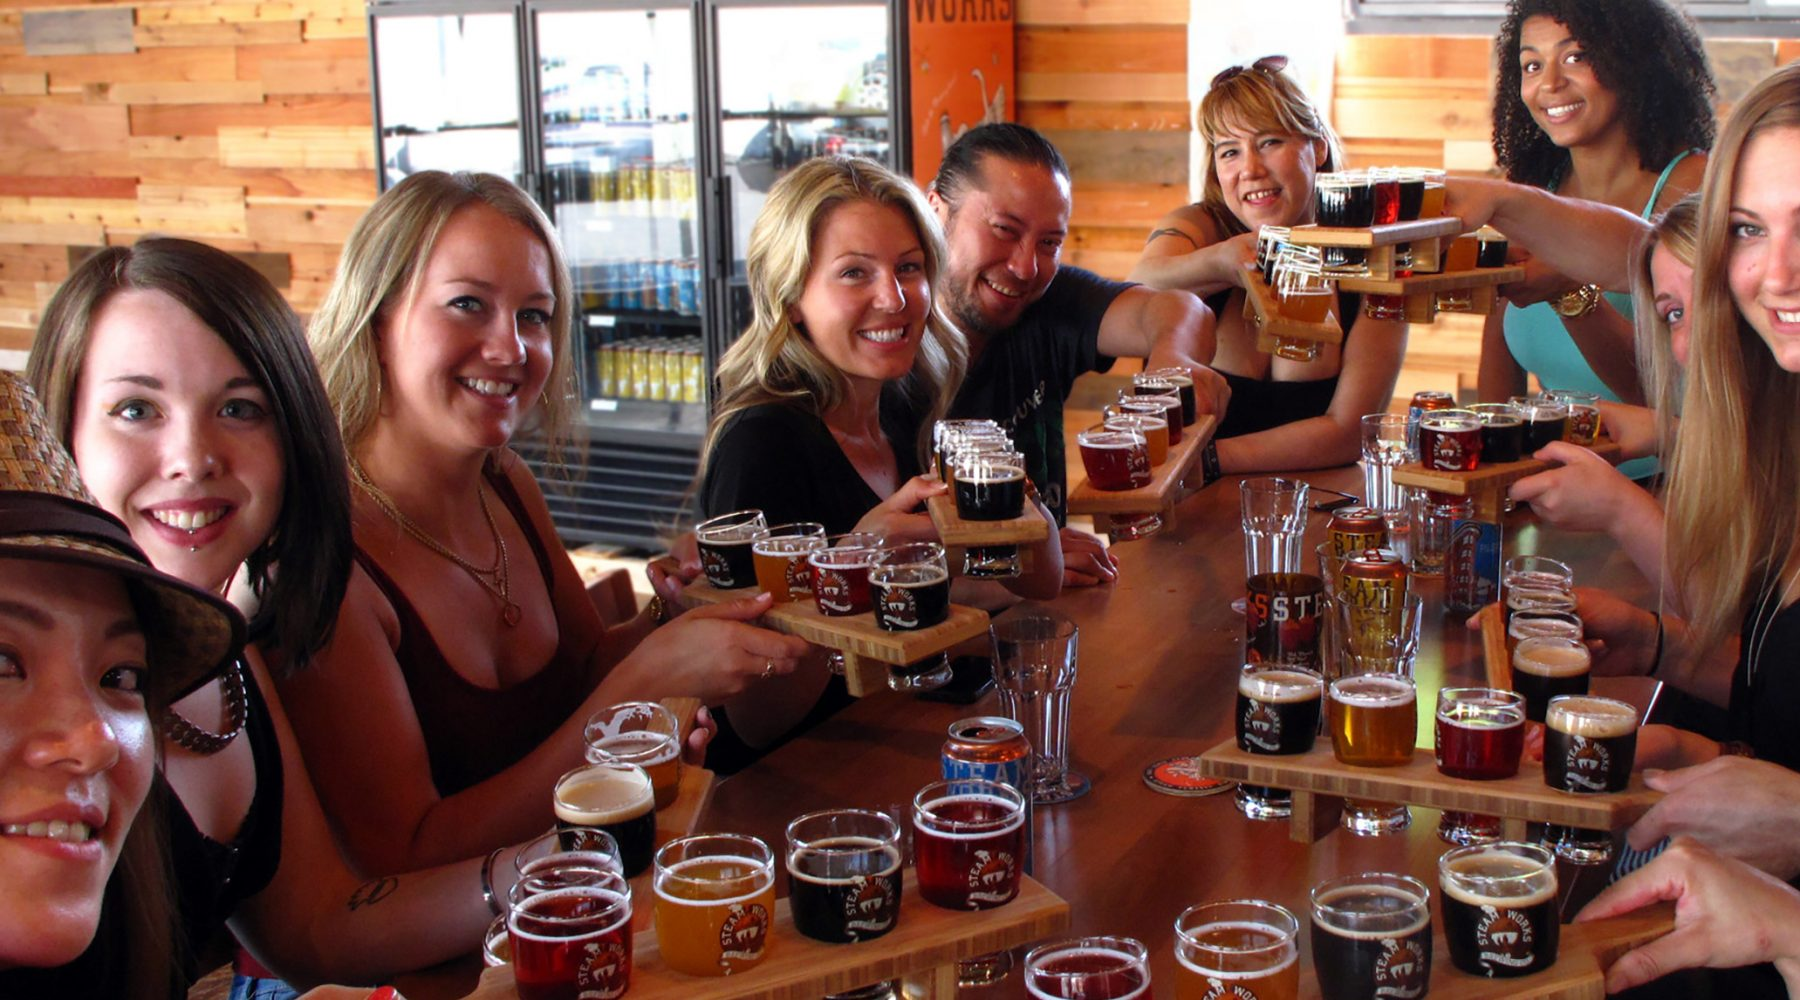 5 Questions Brewers Wish You Would Ask During a Brewery Tour